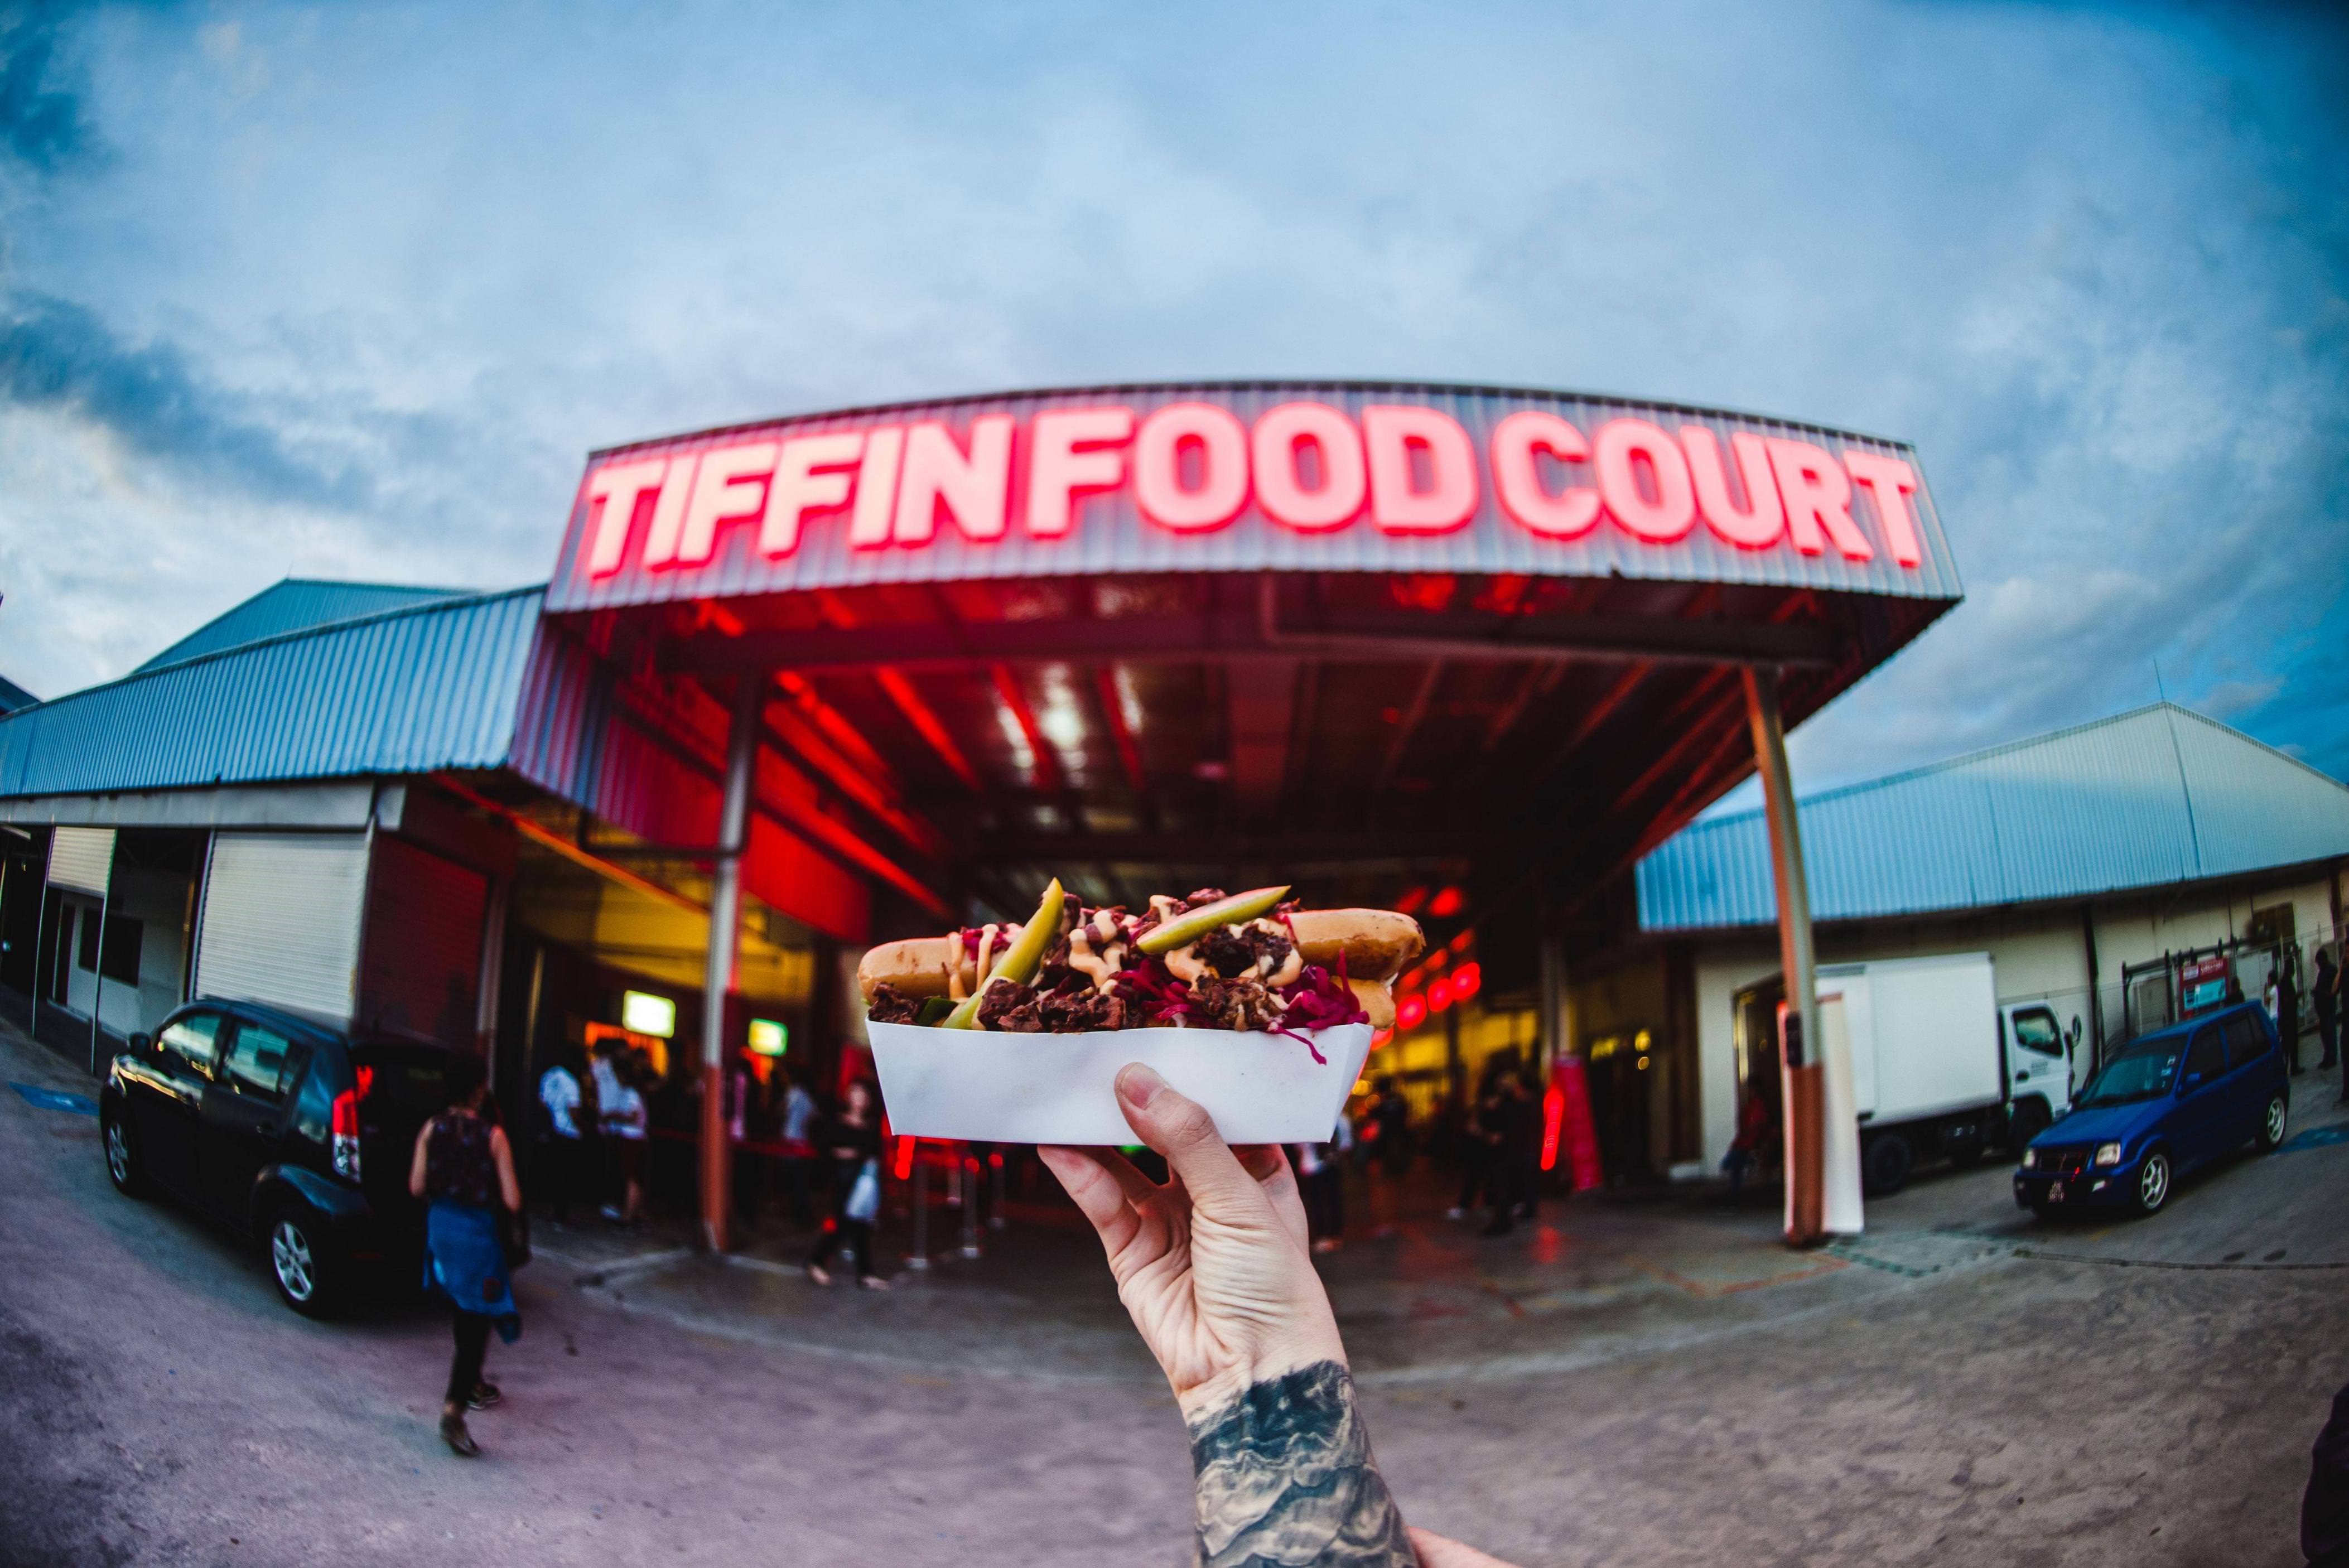 Image from Tiffin Food Court